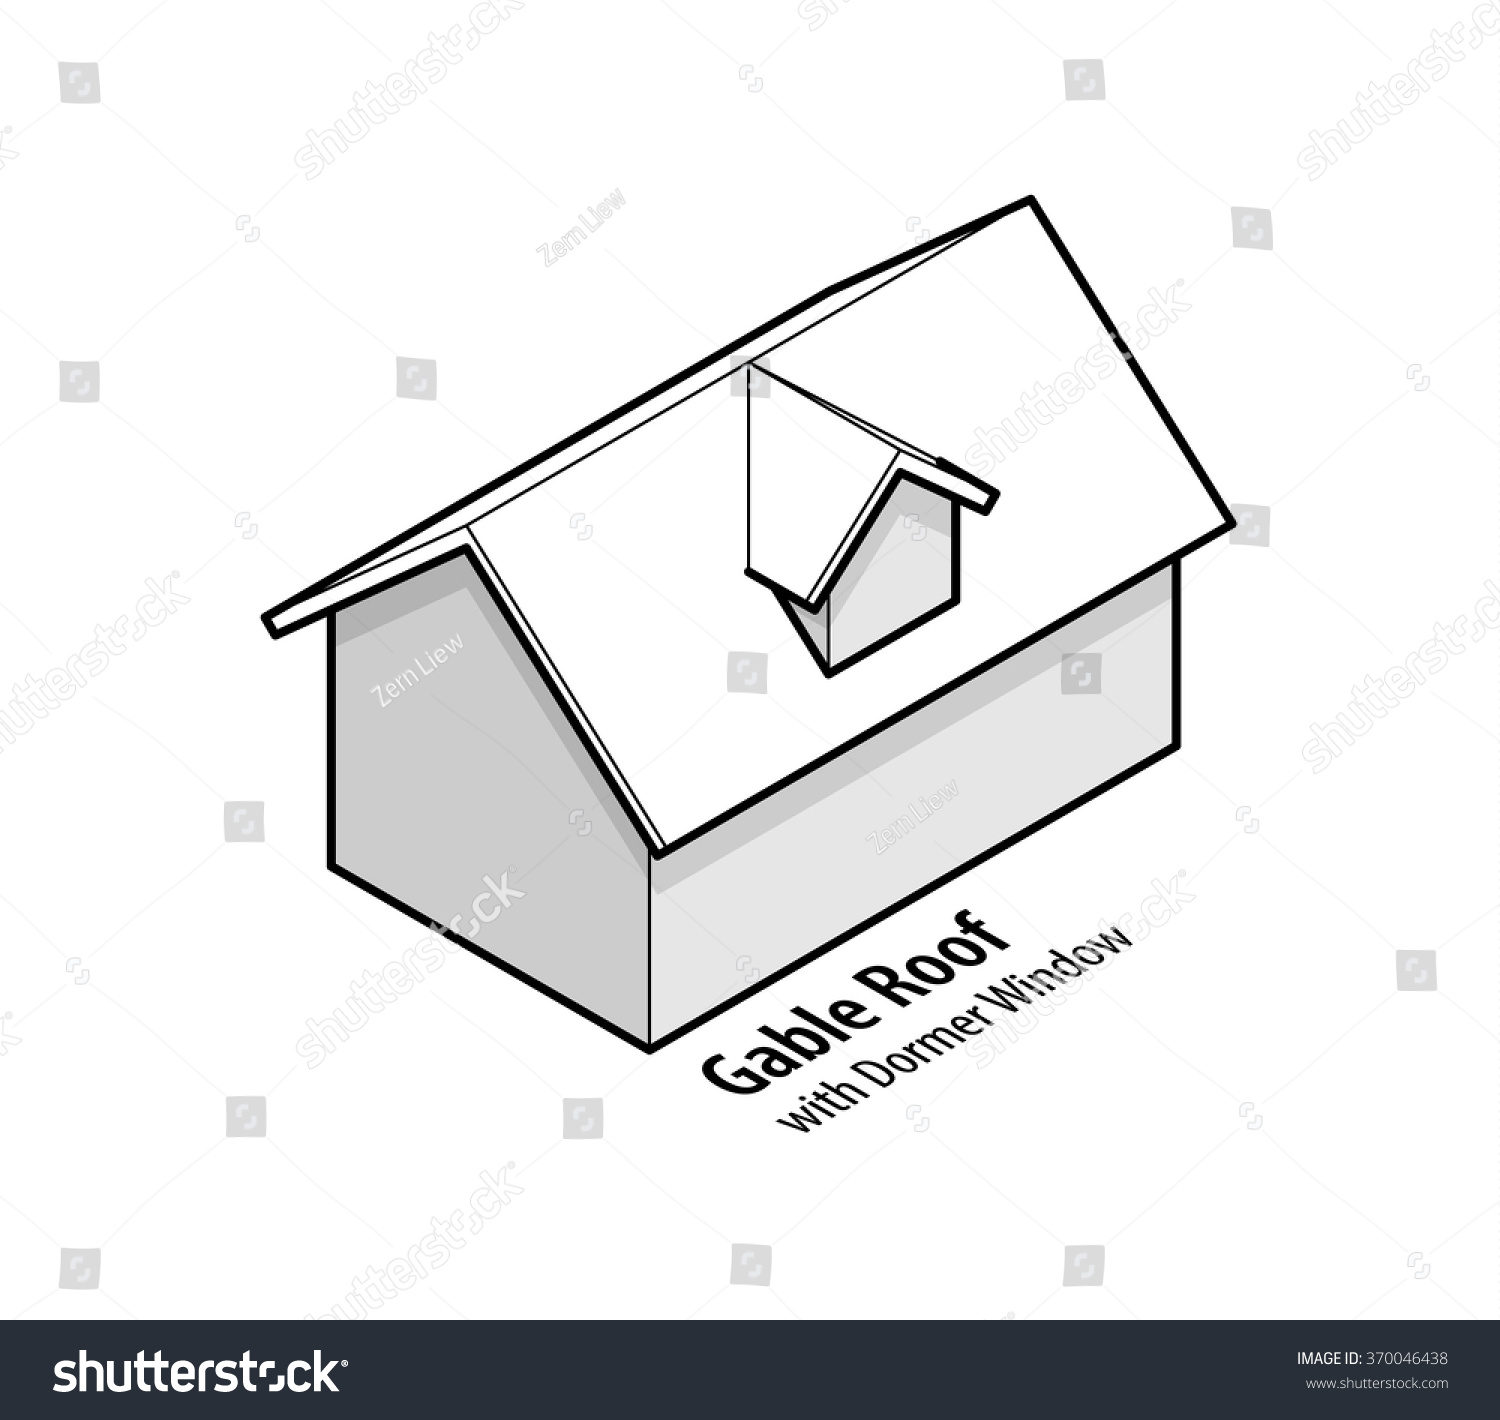 hight resolution of building roof type gable roof with dormer window